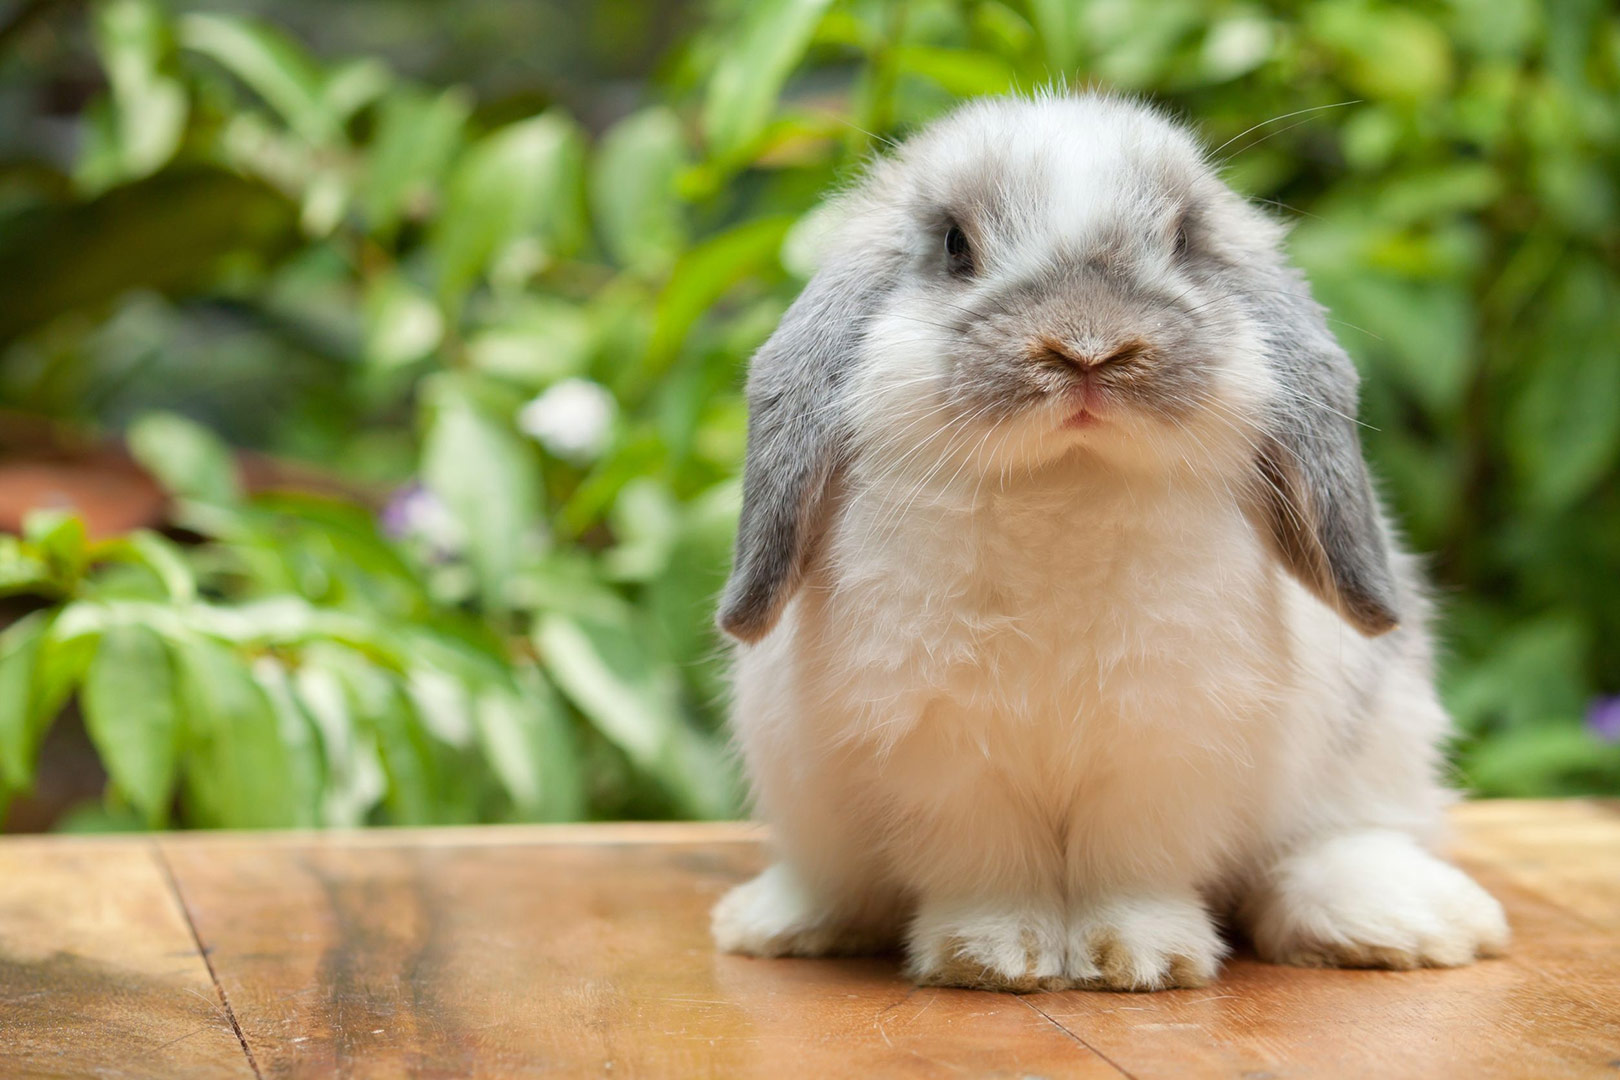 image-of-fluffy-bunny-outside